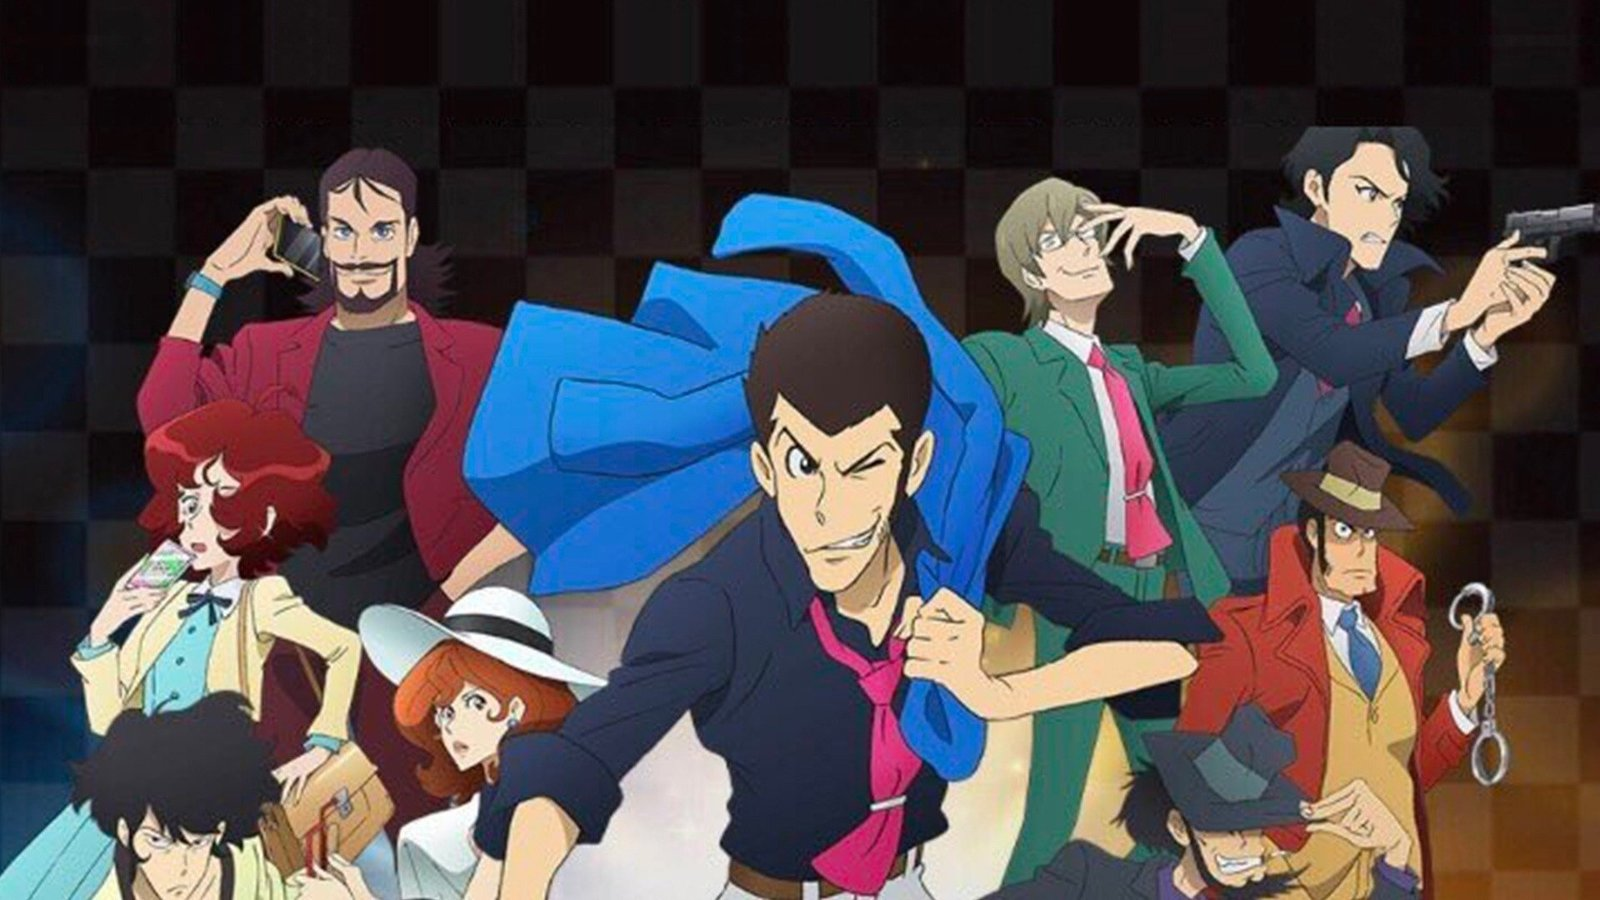 Lupin the 3rd Part 5